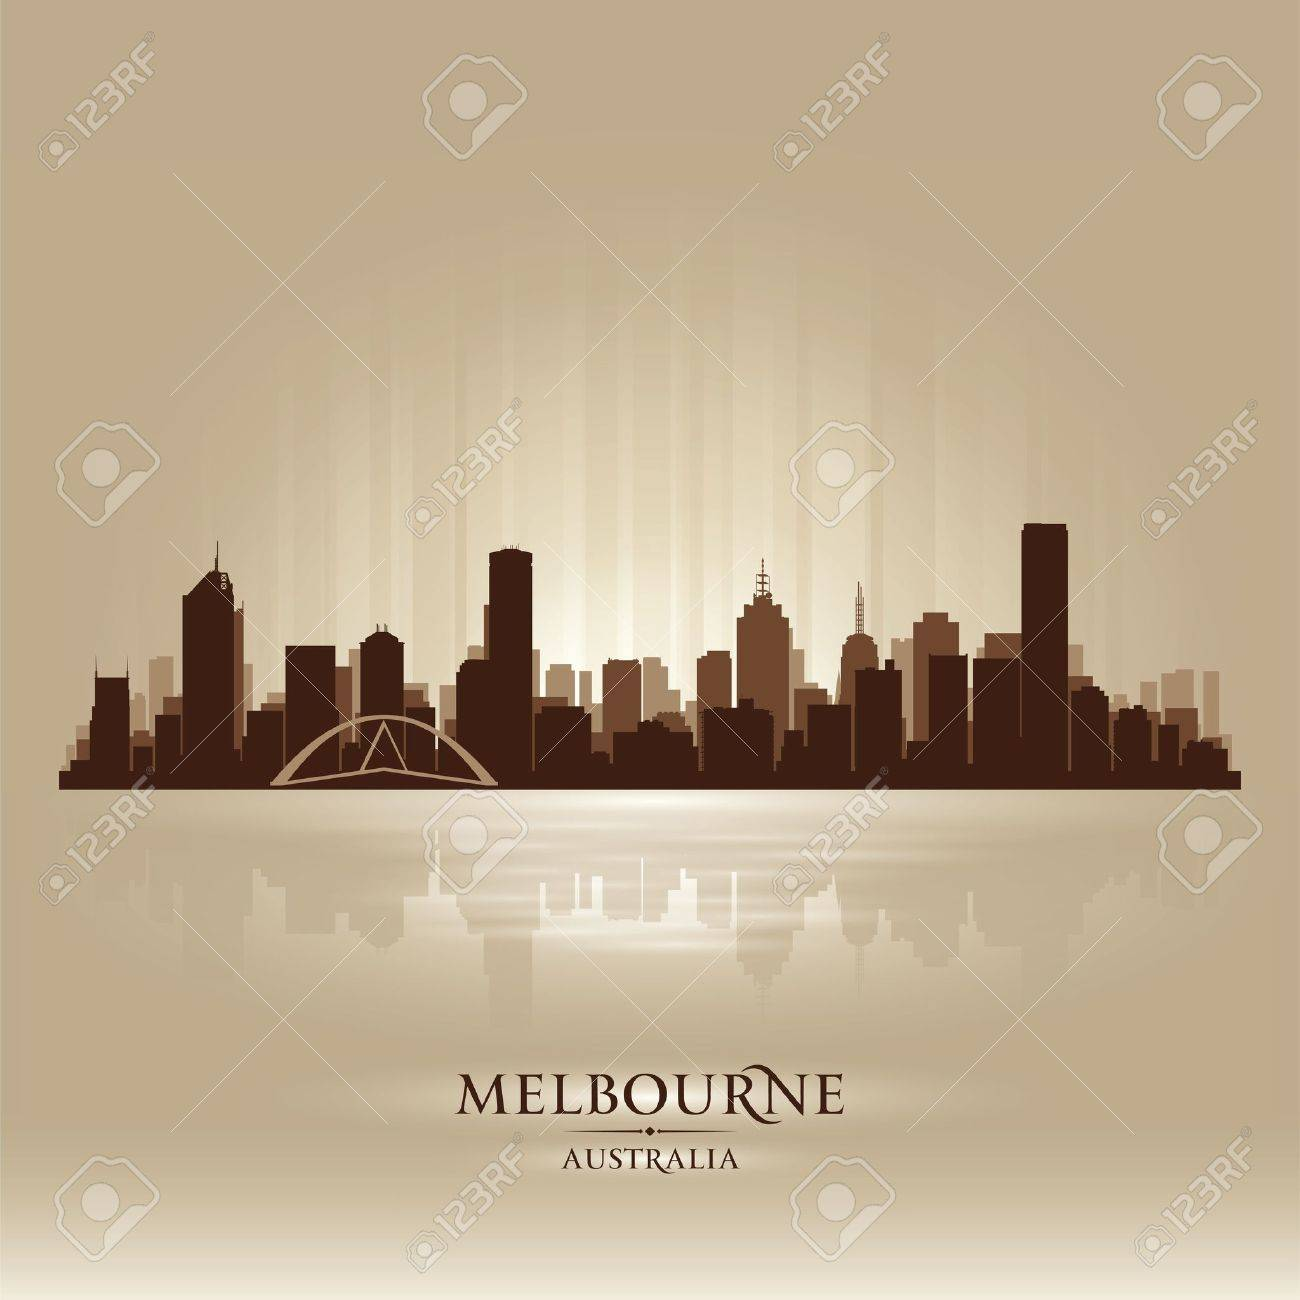 Melbourne Australia skyline city silhouette Stock Vector - 18259218